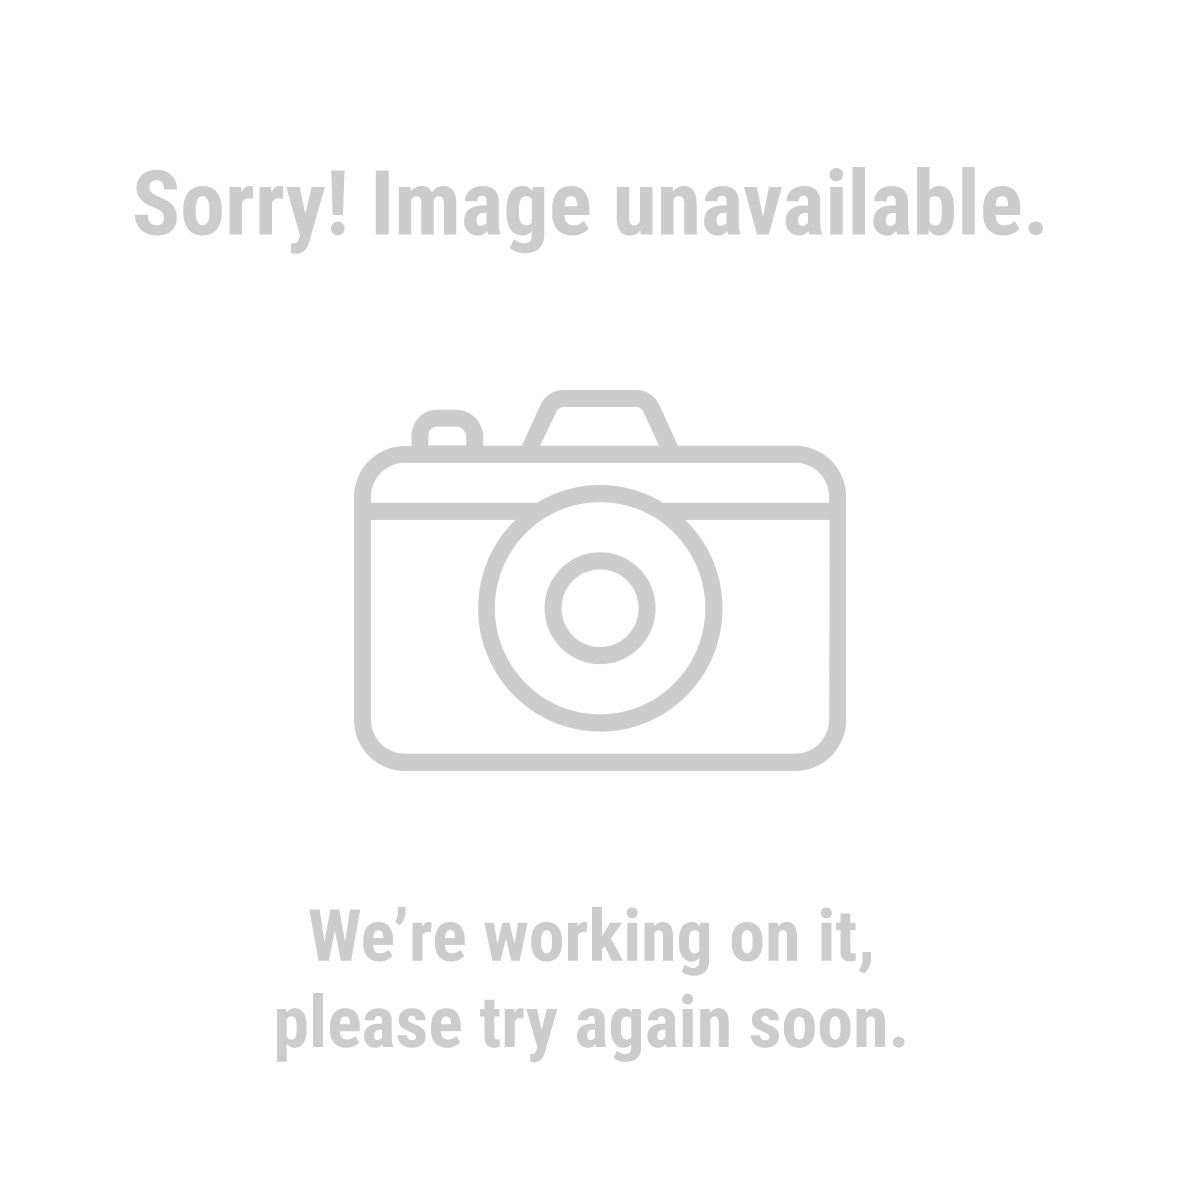 Nitrous 99773 4 Piece Anodized Aluminum Valve Set - Black